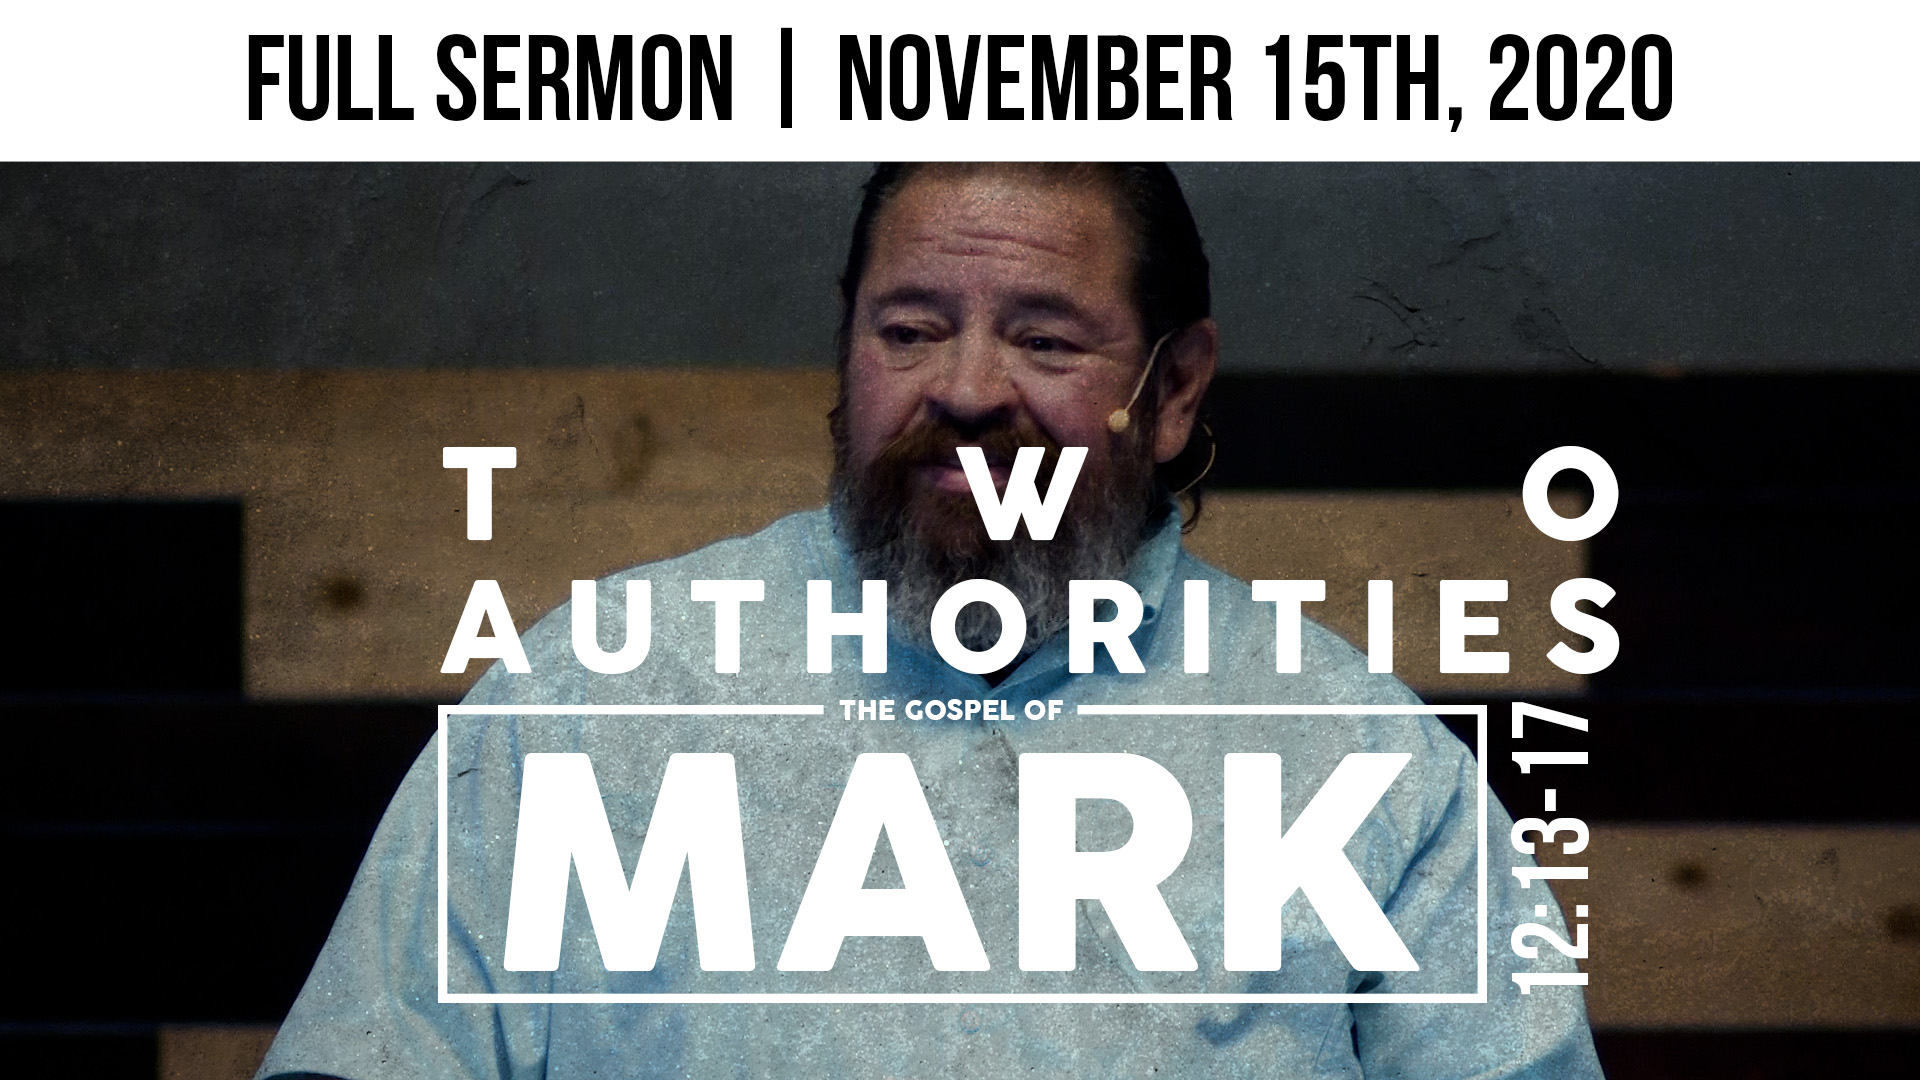 Two Authorities | Mark 12:13-17